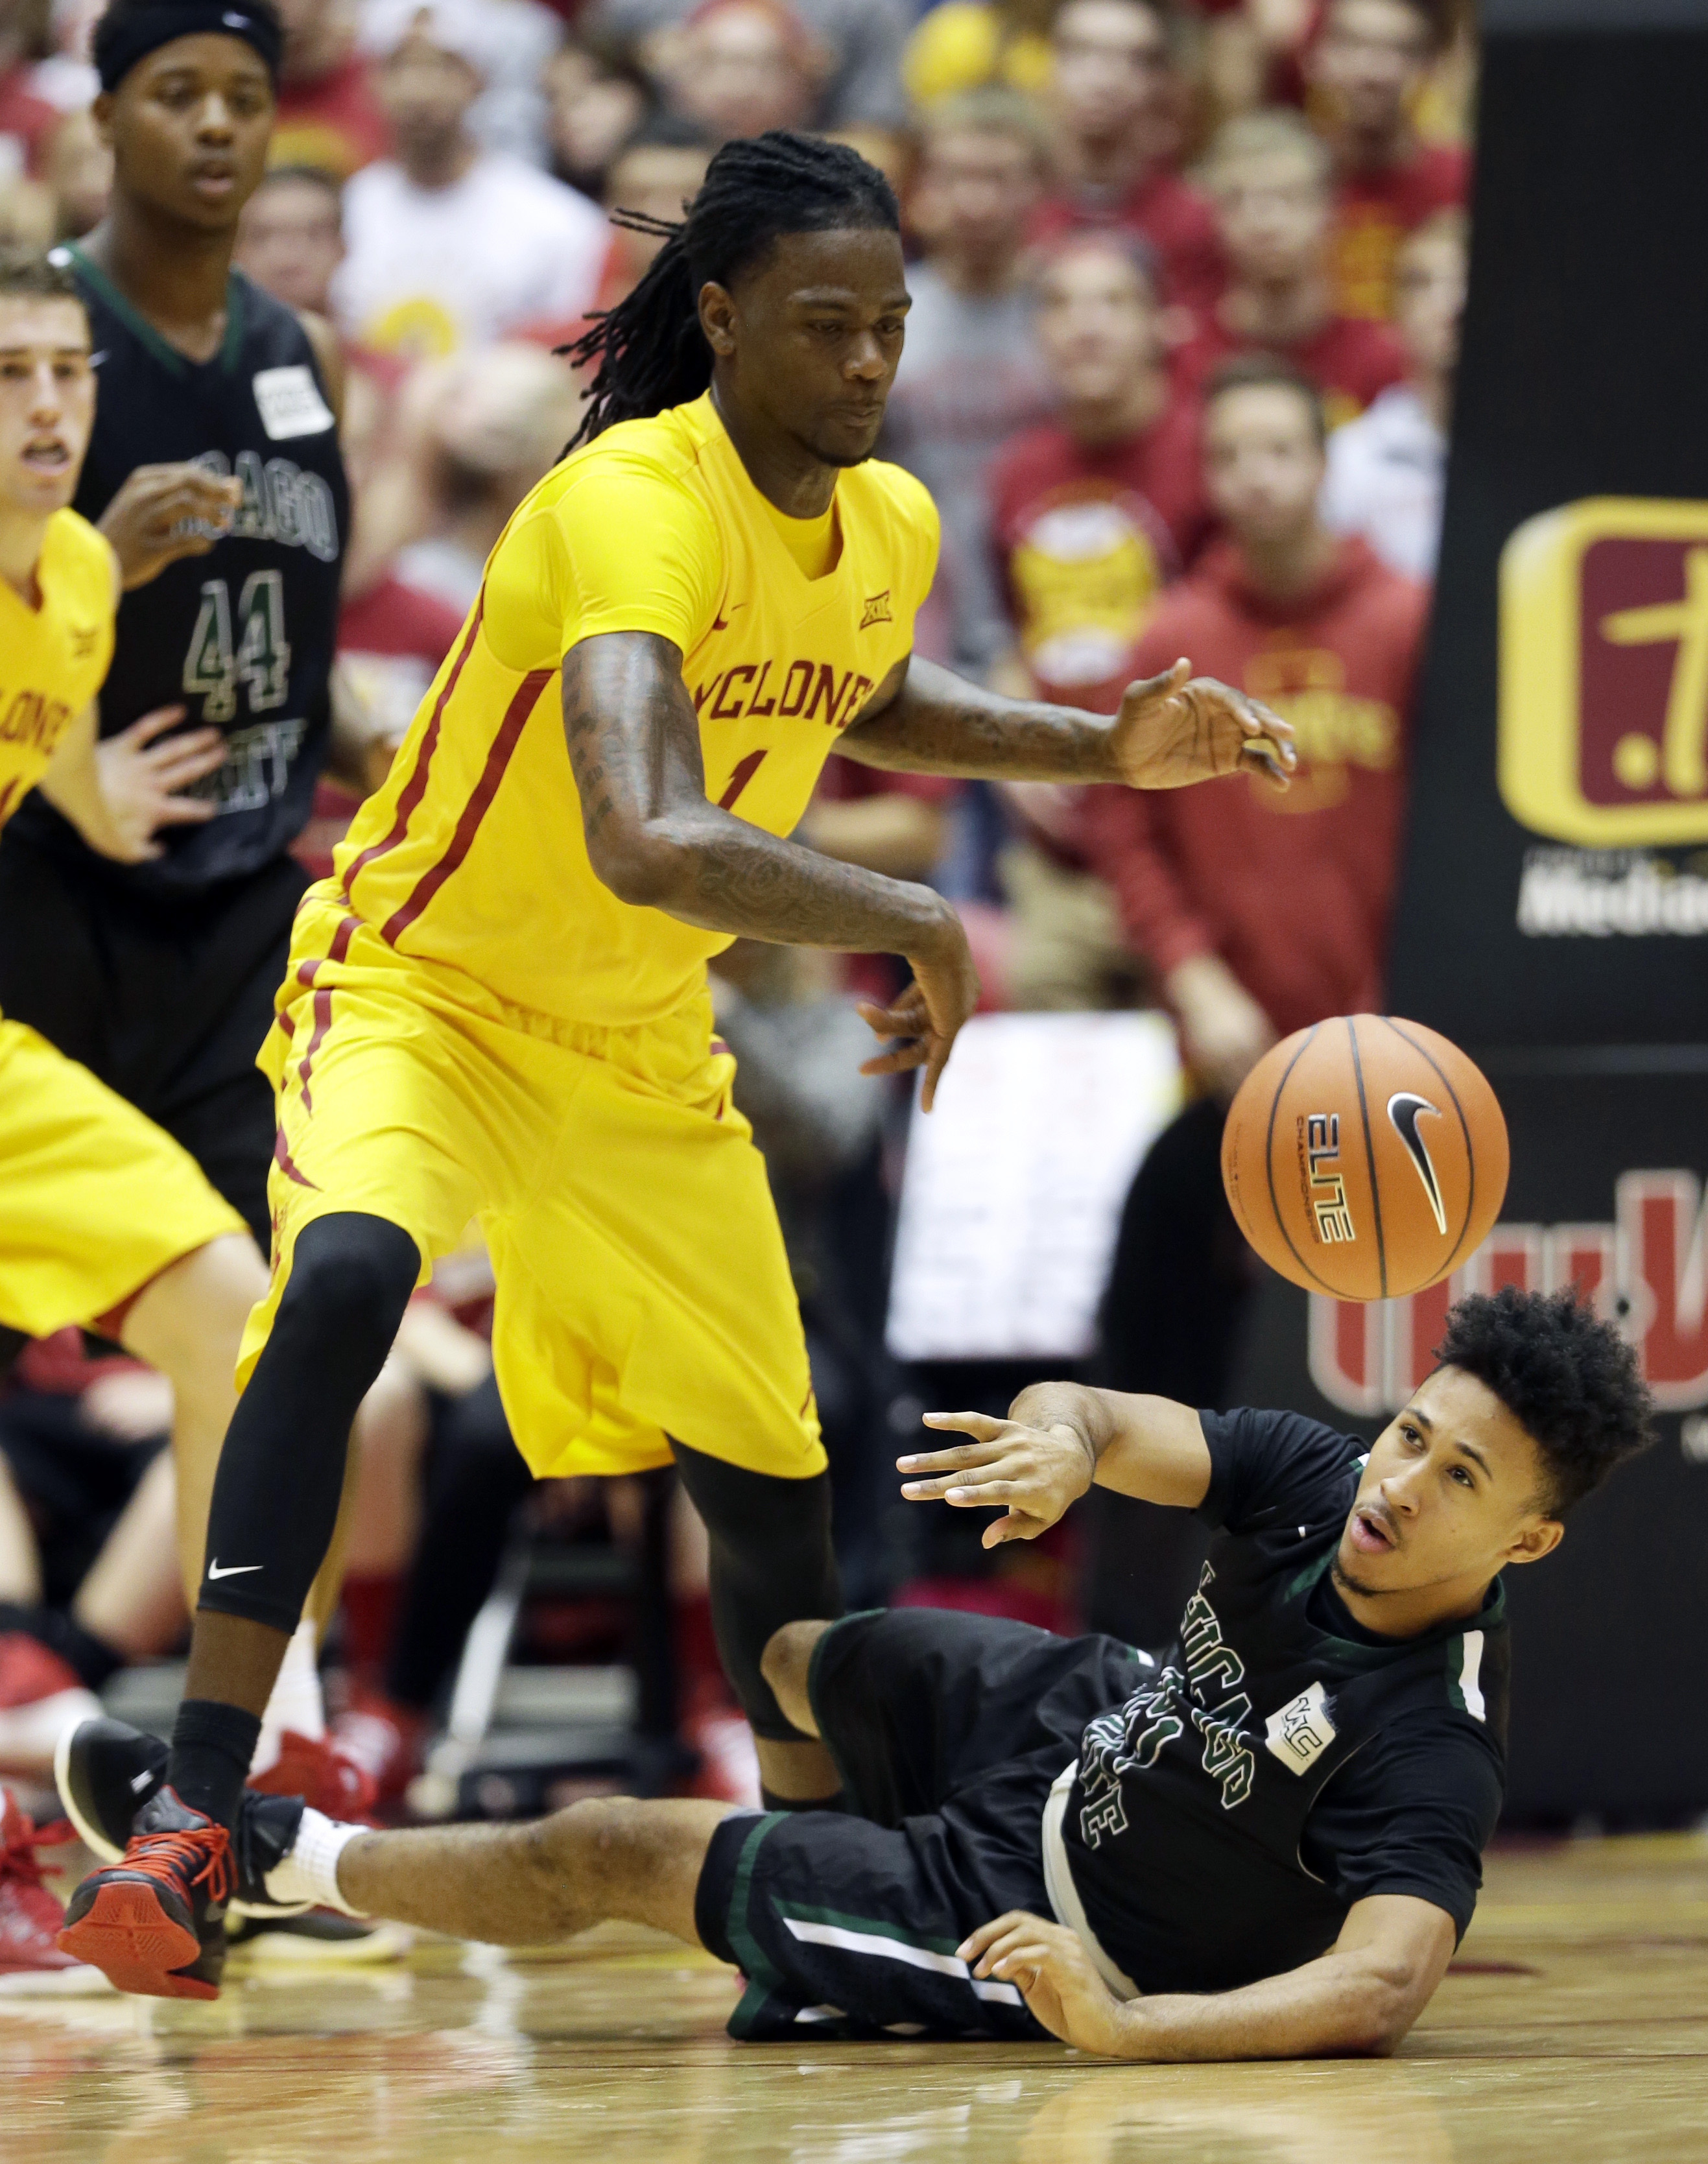 Chicago State guard Joshua Batson, right, loses the ball in front of Iowa State forward Jameel McKay, left, during the first half of an NCAA college basketball game, Monday, Nov. 16, 2015, in Ames, Iowa. (AP Photo/Charlie Neibergall)